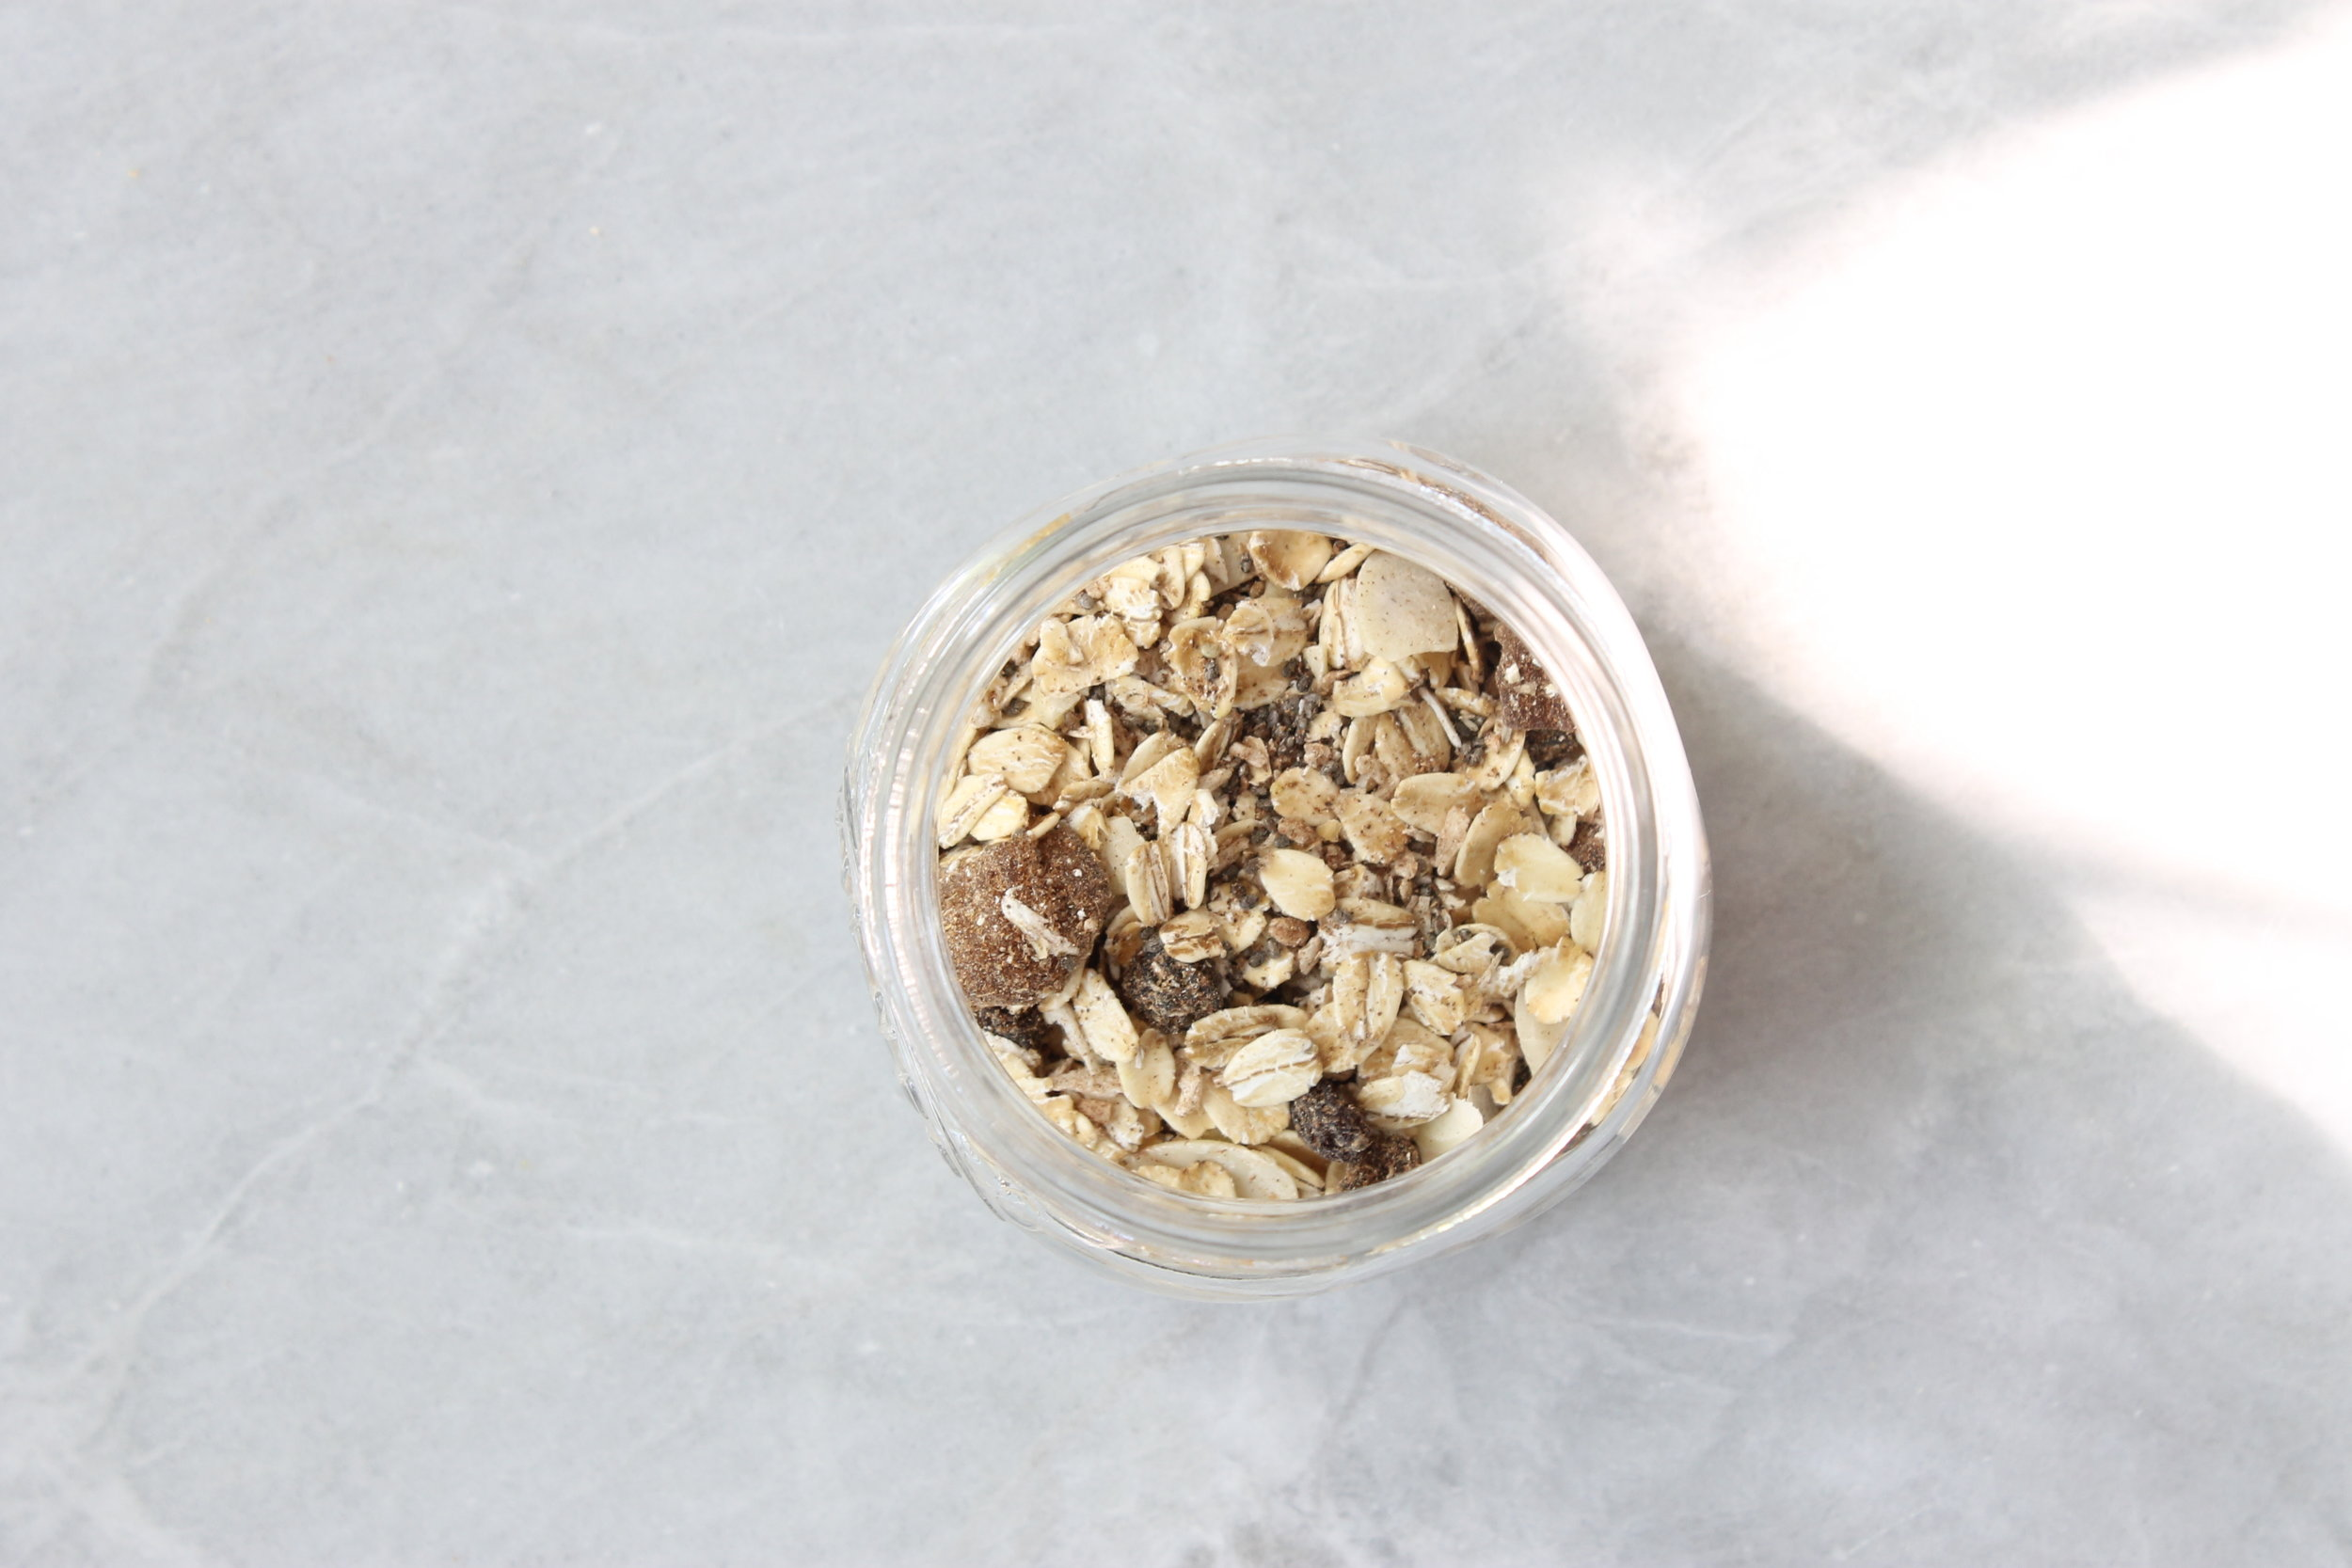 Make-ahead bircher muesli dry mix | Beloved Kitchen